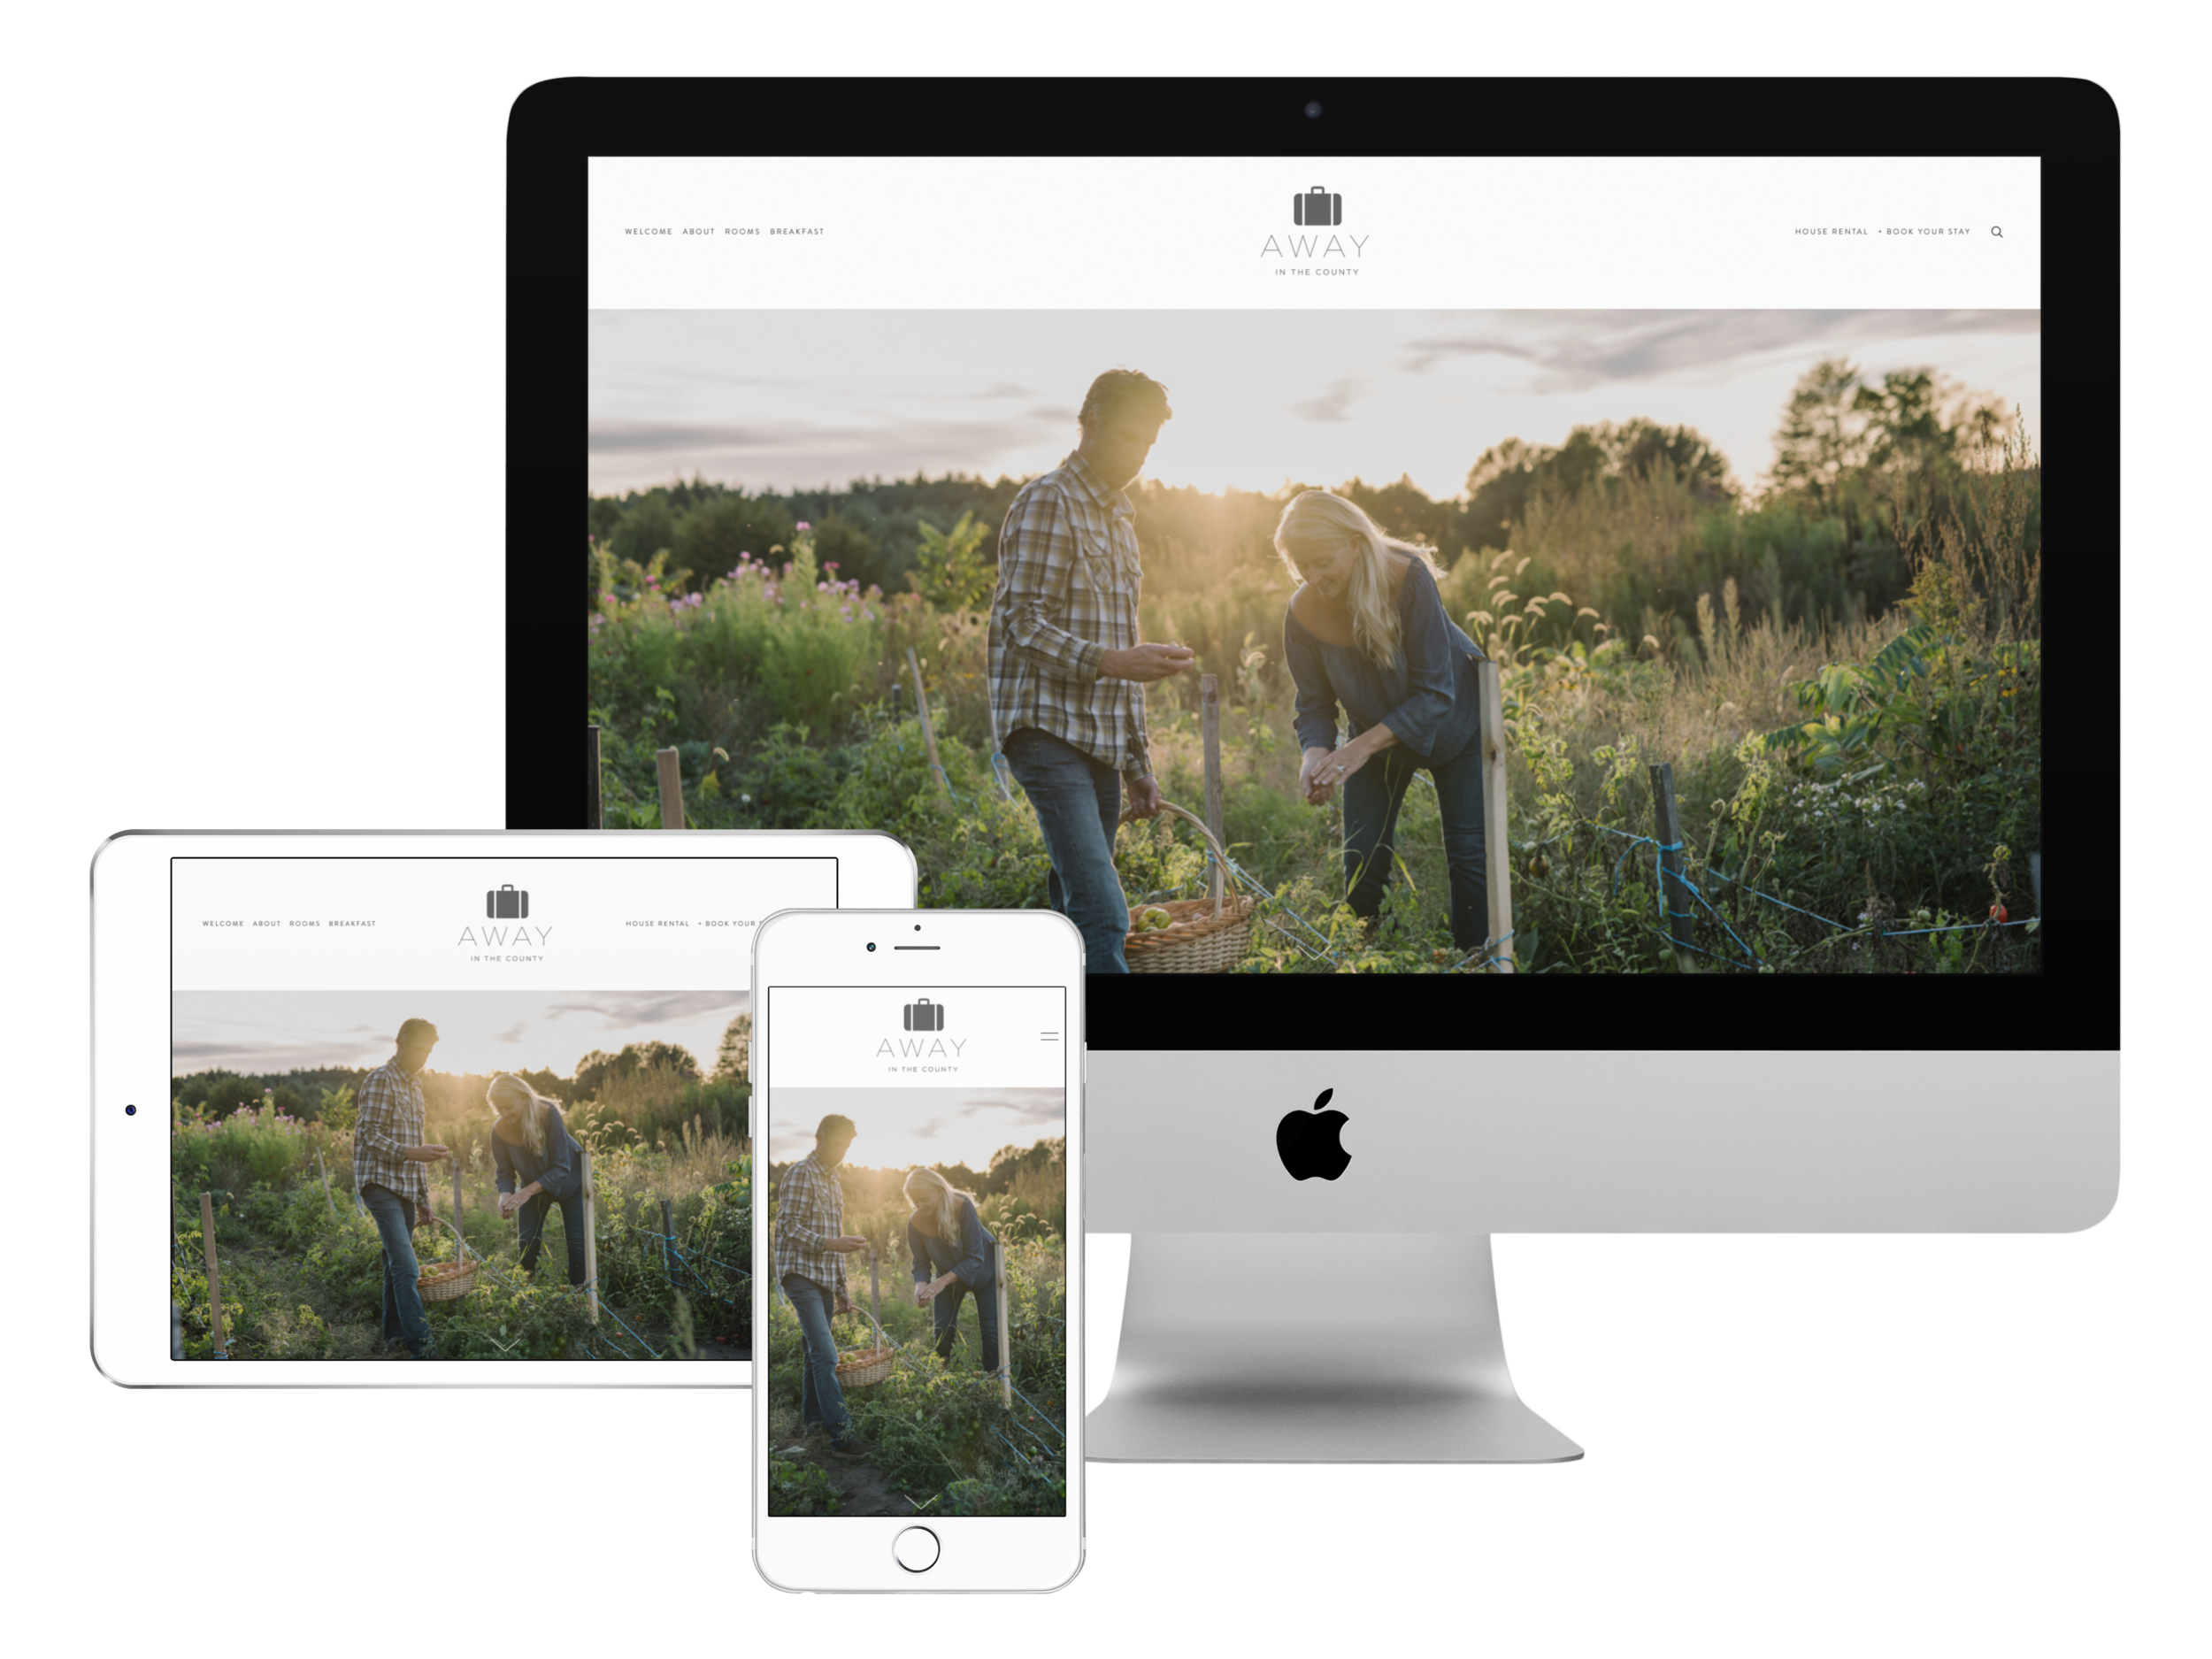 Designed and developed the responsive website:  www.awayinthecounty.com